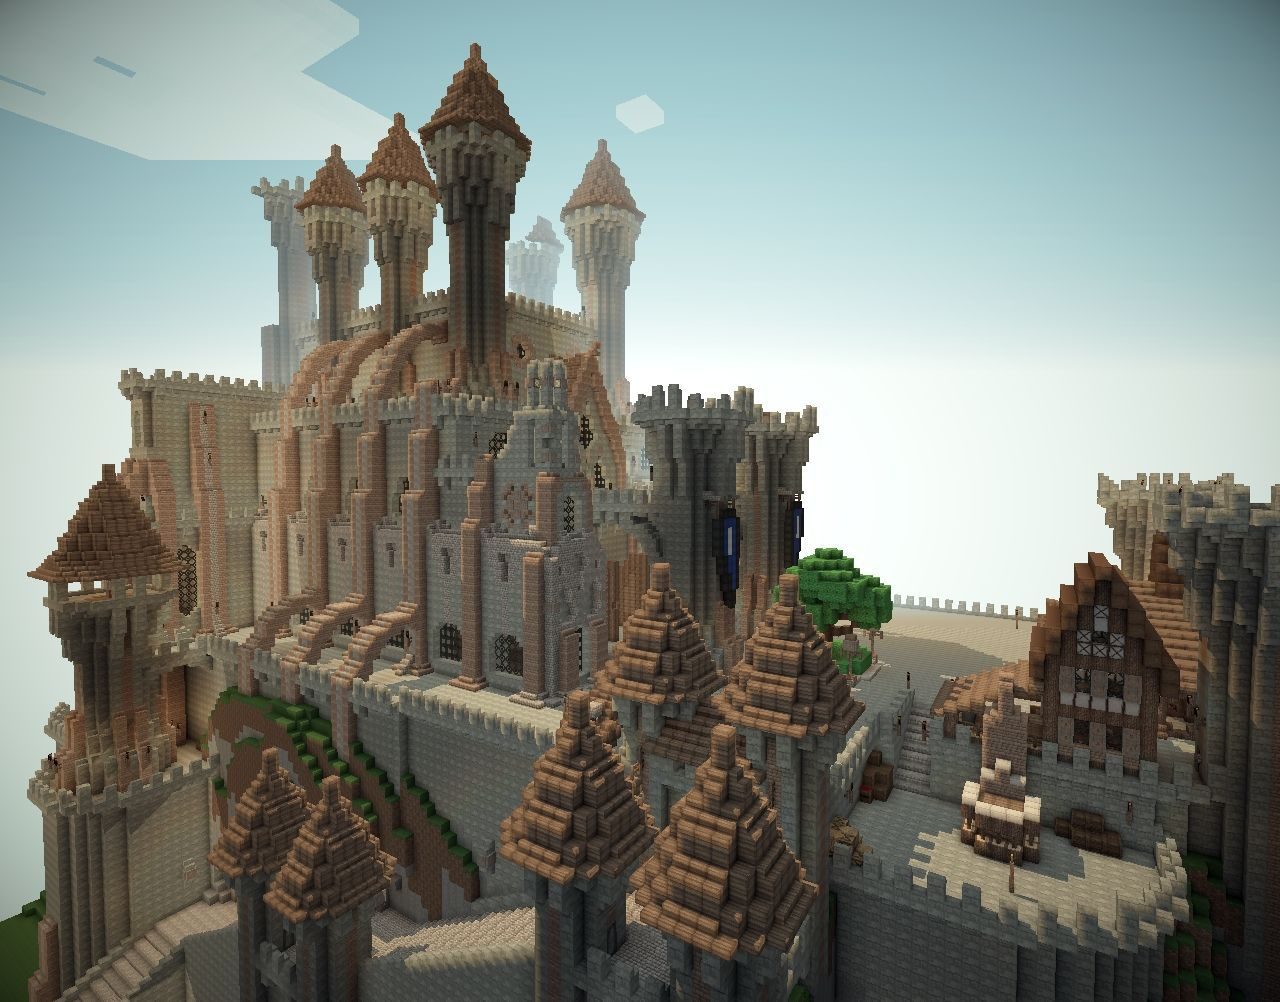 Castle minecraft project minecraft castle seed minecraft pe seeds minecraft city minecraft games